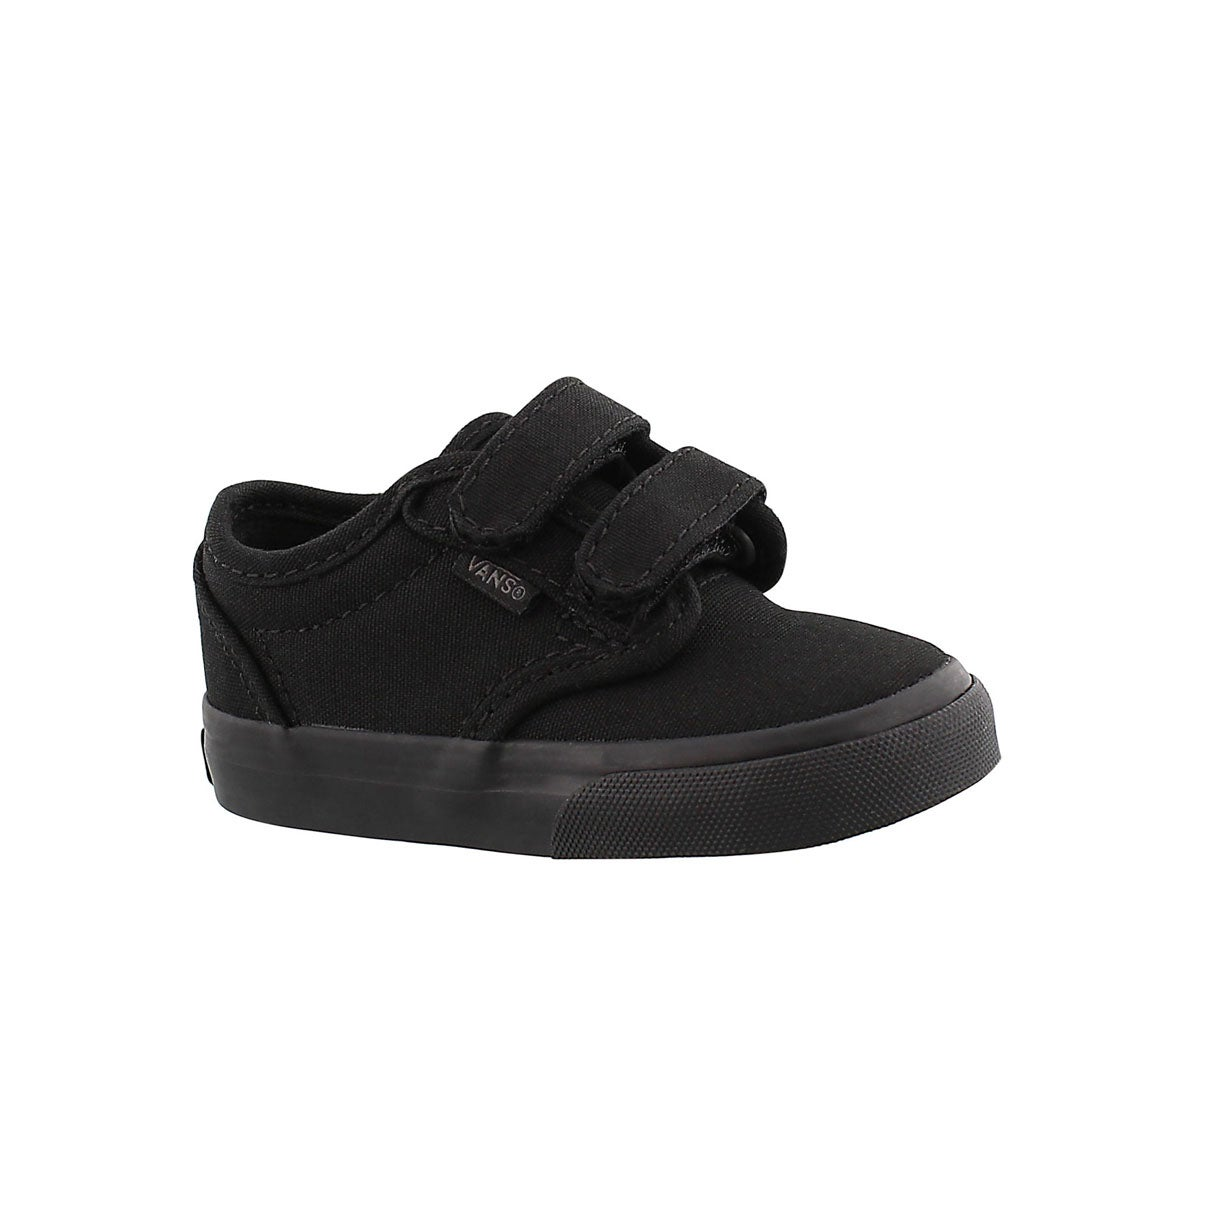 Infs-b Atwood blk/blk canvas sneaker